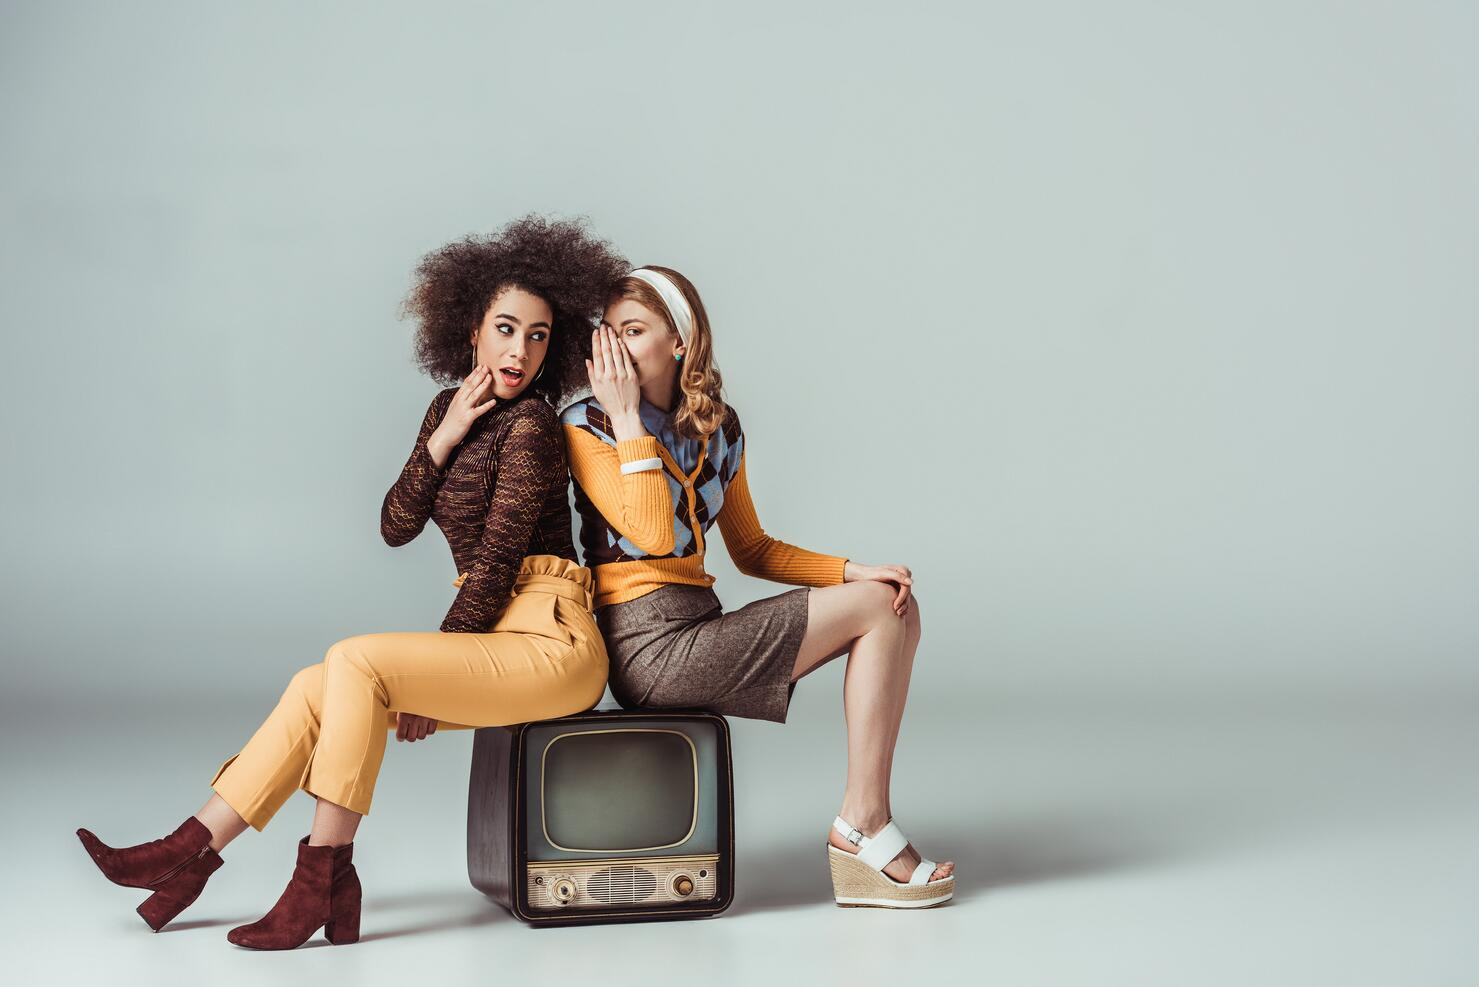 image of two girls sitting on an old tv gossiping